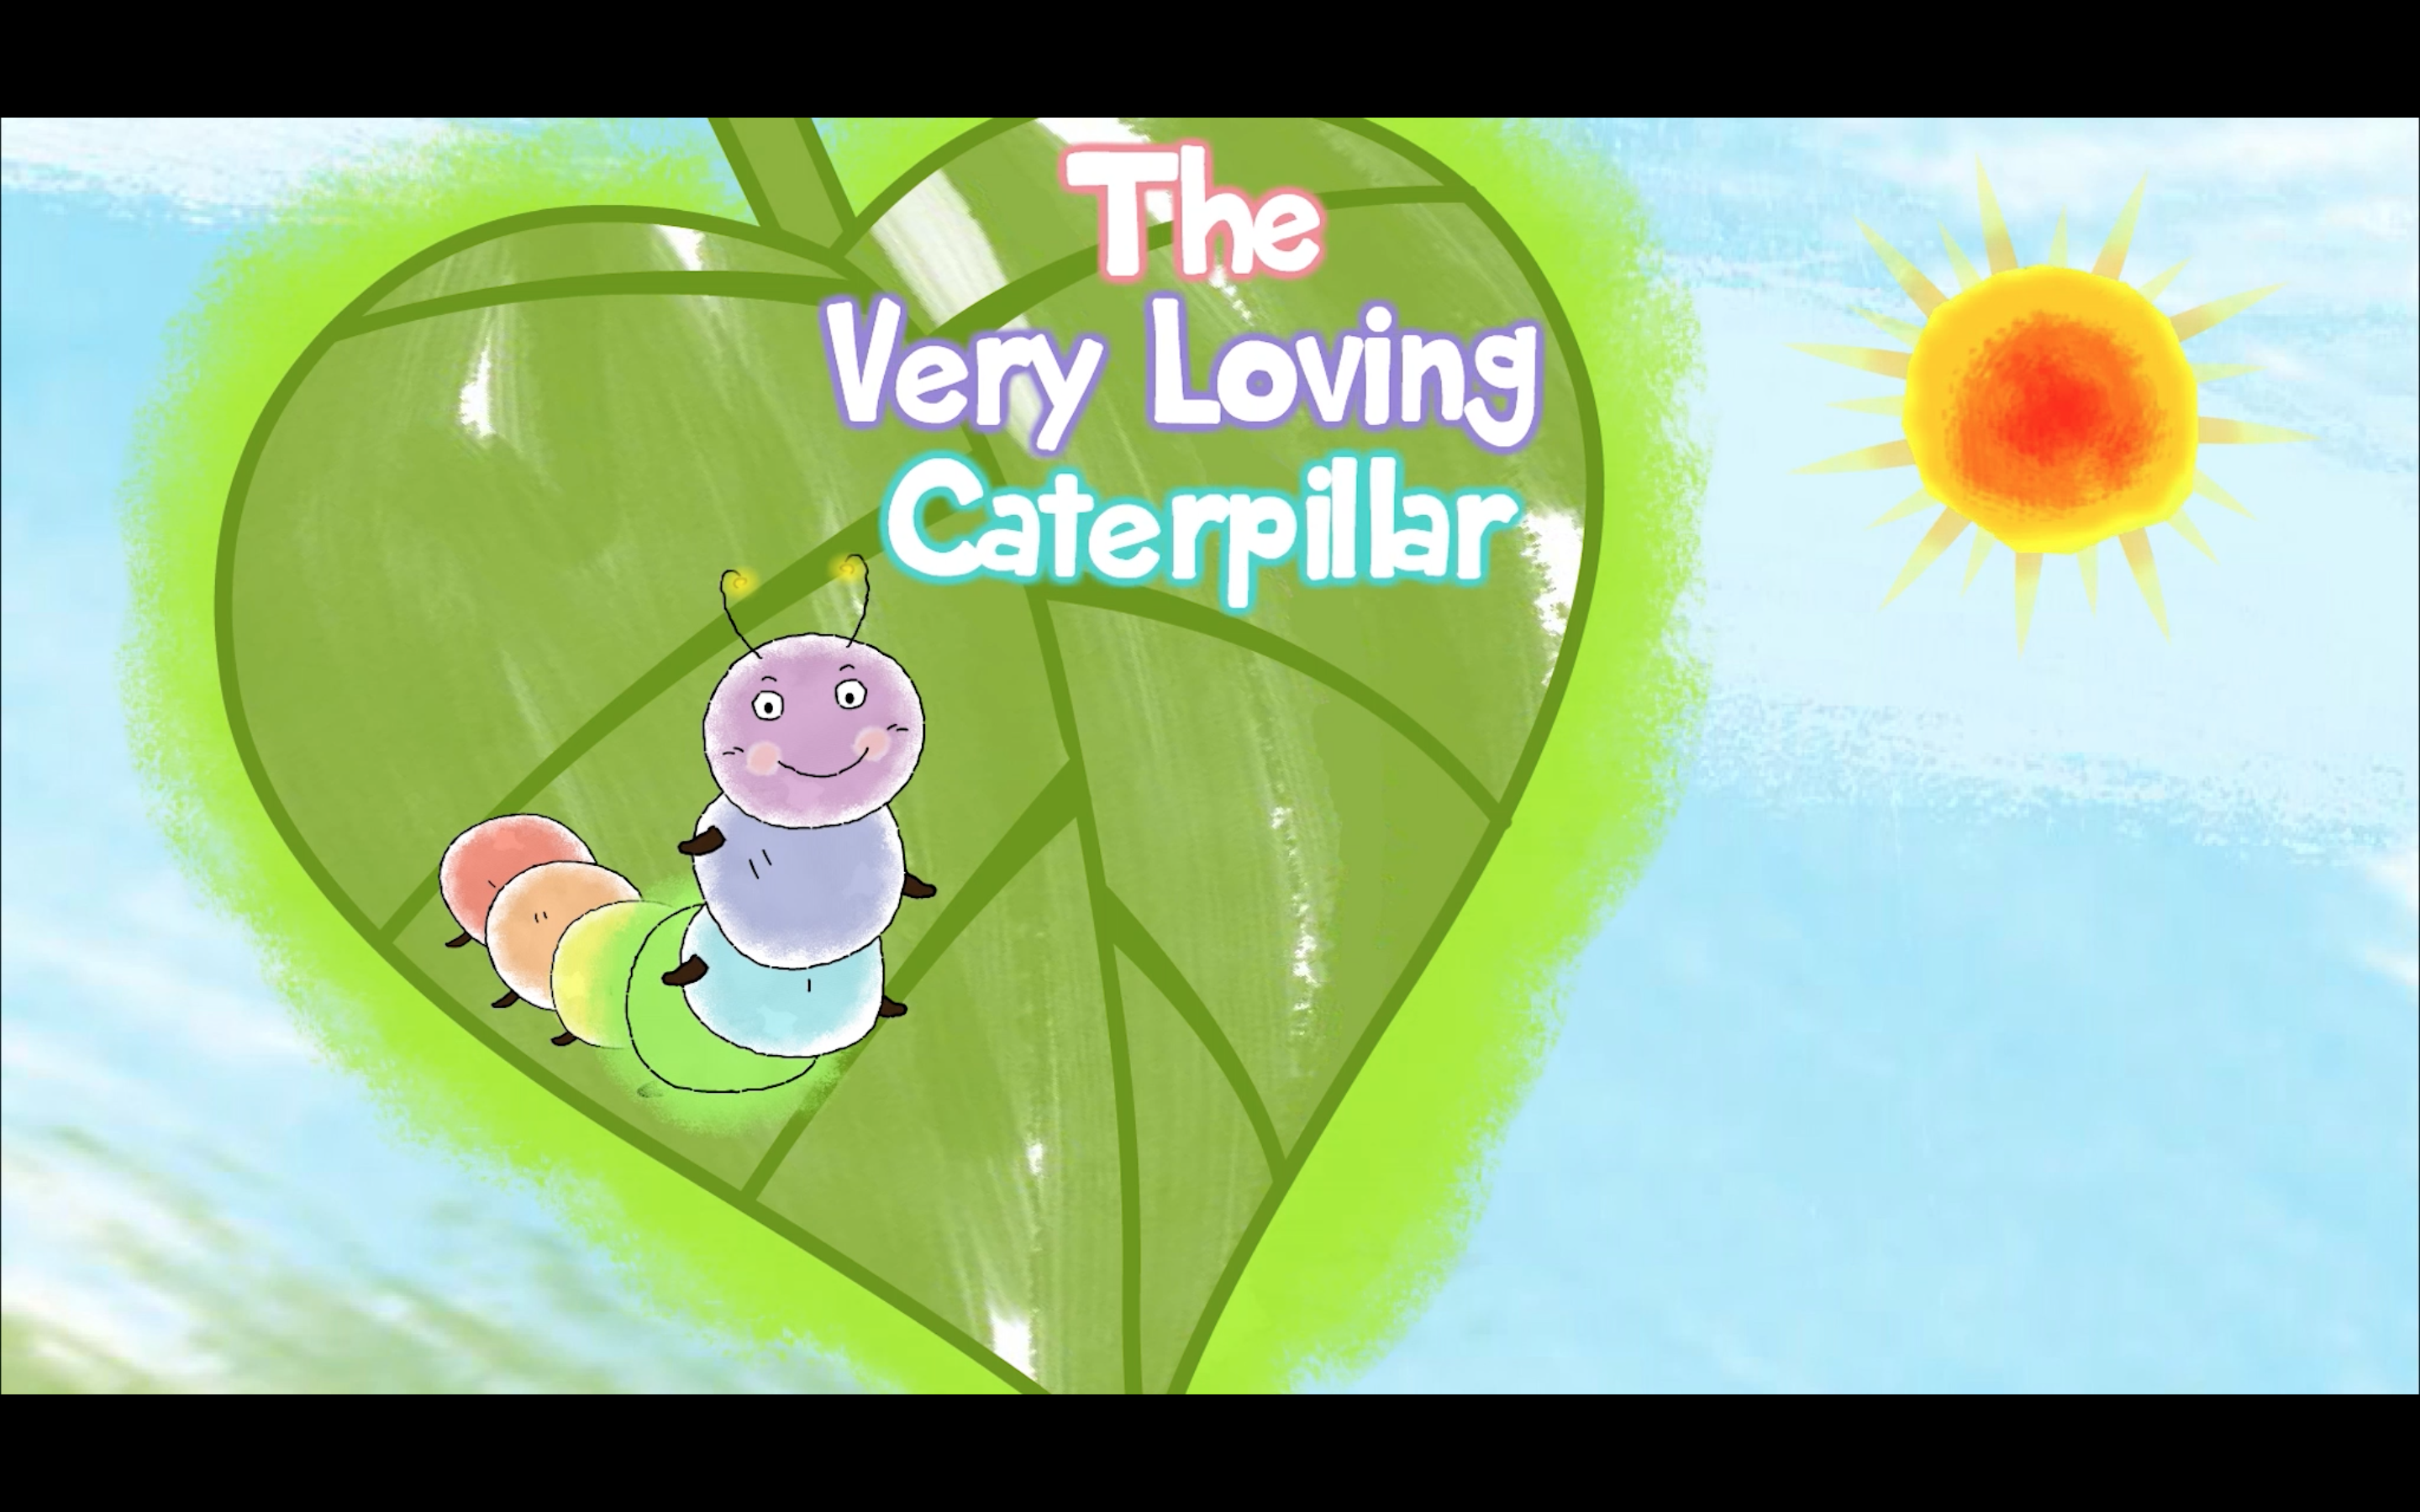 The Very Loving Caterpillar